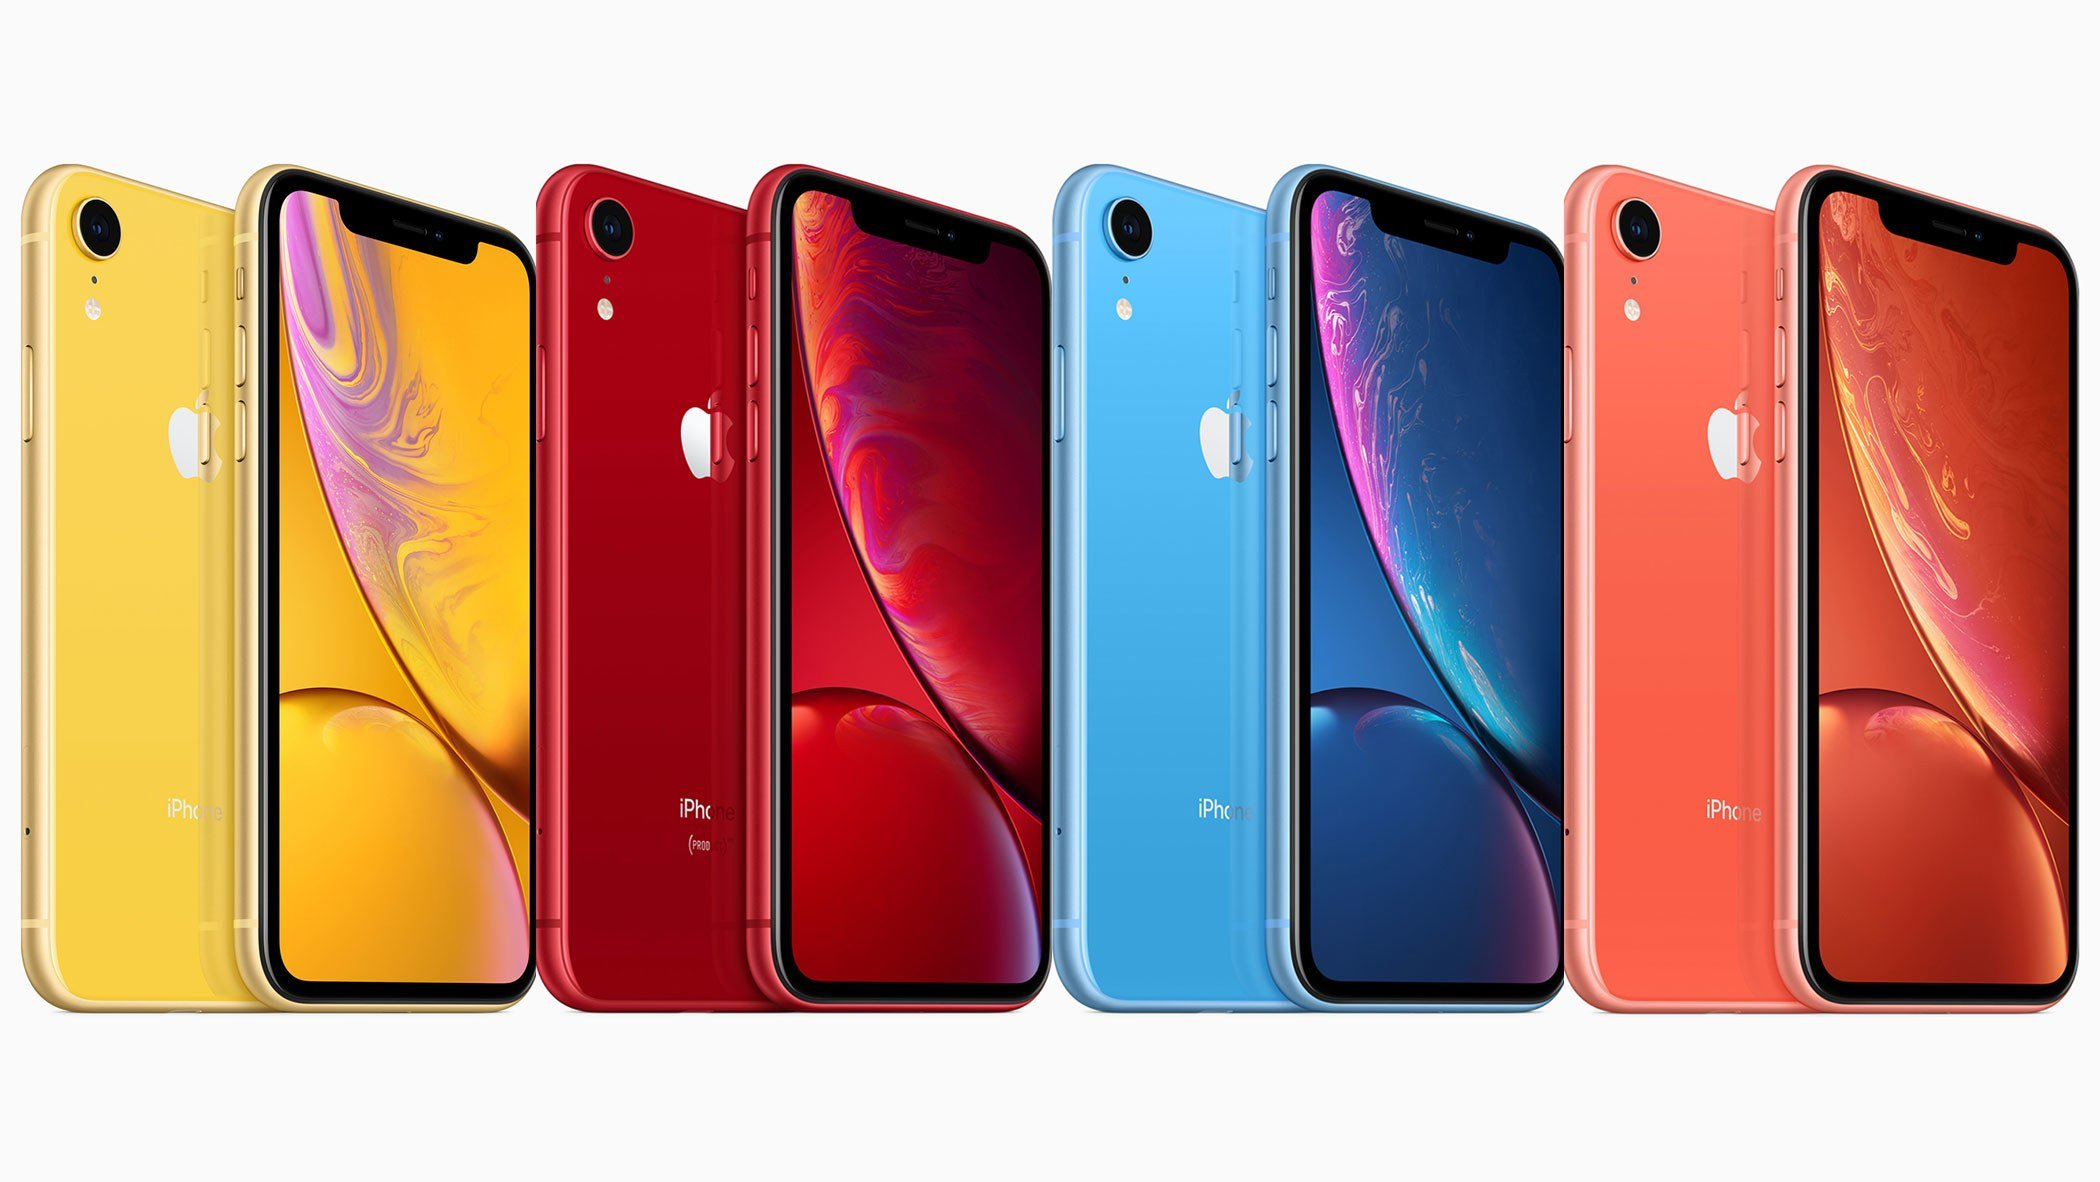 apple, apple stock, apple iphone xr, iphone xr, foxconn